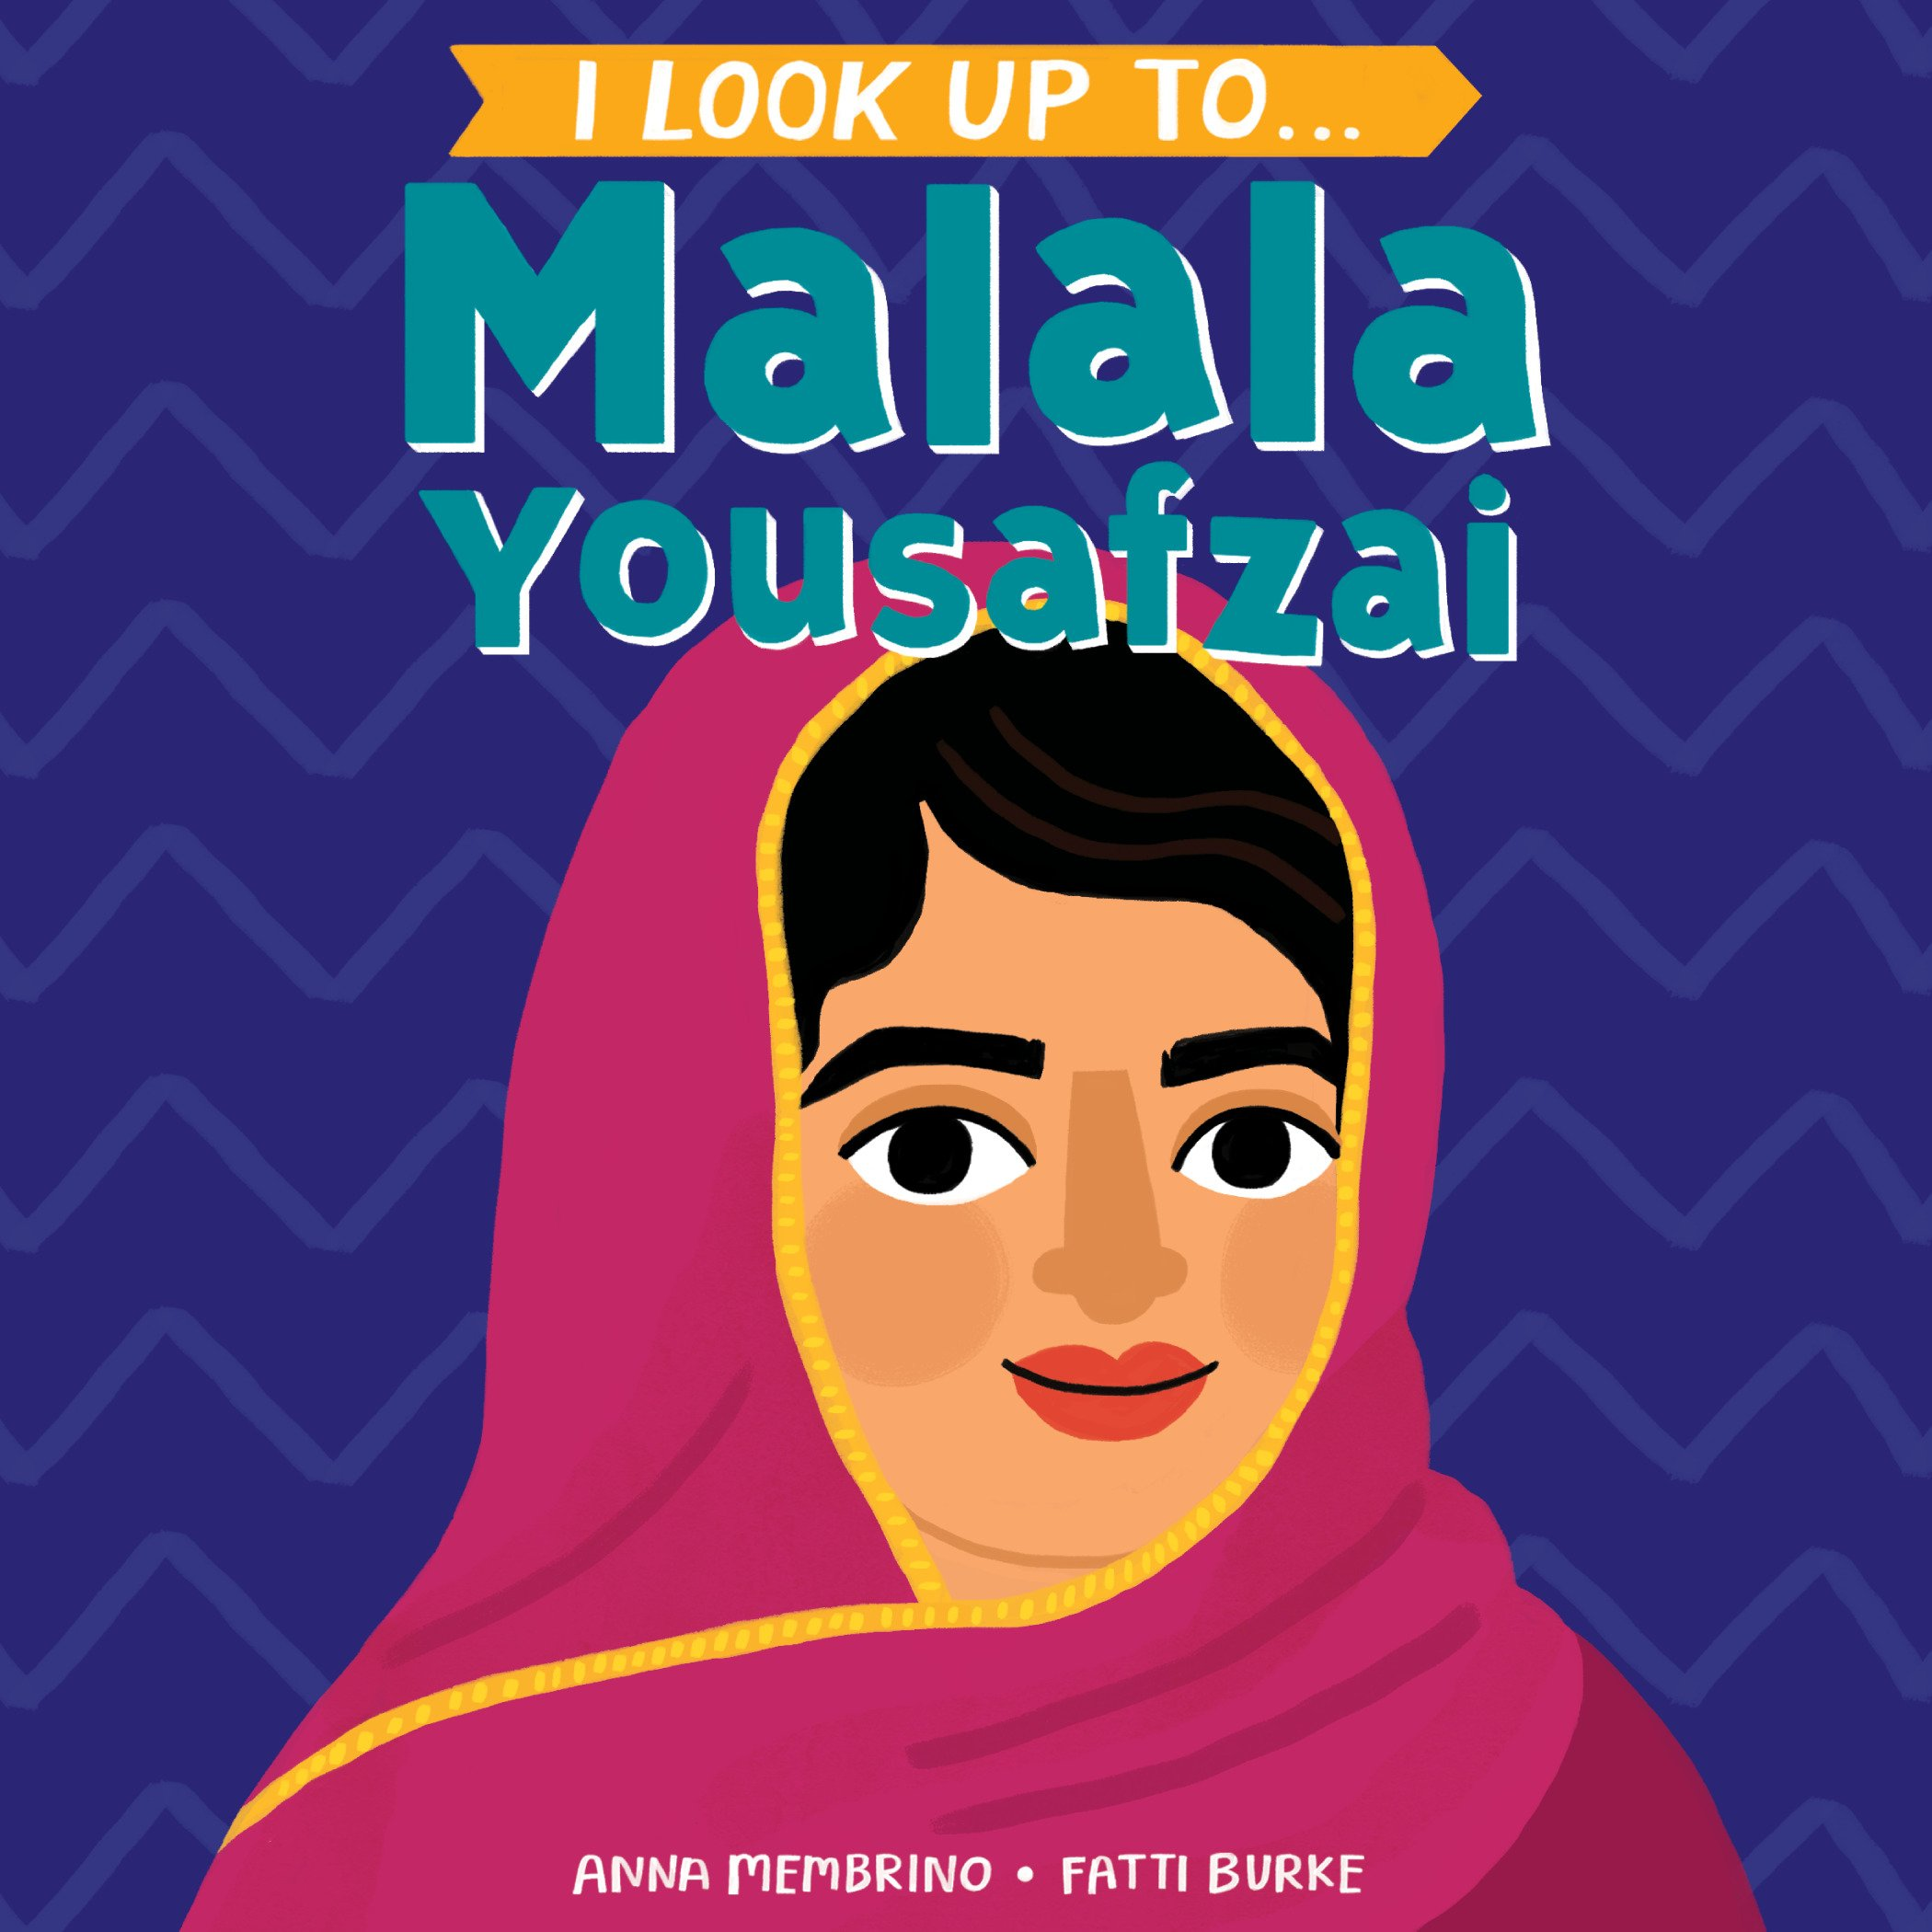 12. I Look Up To…Malala Yousafzai - I am so excited for this series to be released and they're currently available for pre-order. A few others I have my eye on are, I Look Up To…Michele Obama, Serena Williams, Ruth Bader Ginsburg. It's a great way to introduce little ones to women you admire, like Malala Yousafzai, an activist for girls' education and Nobel Peace Prize winner.